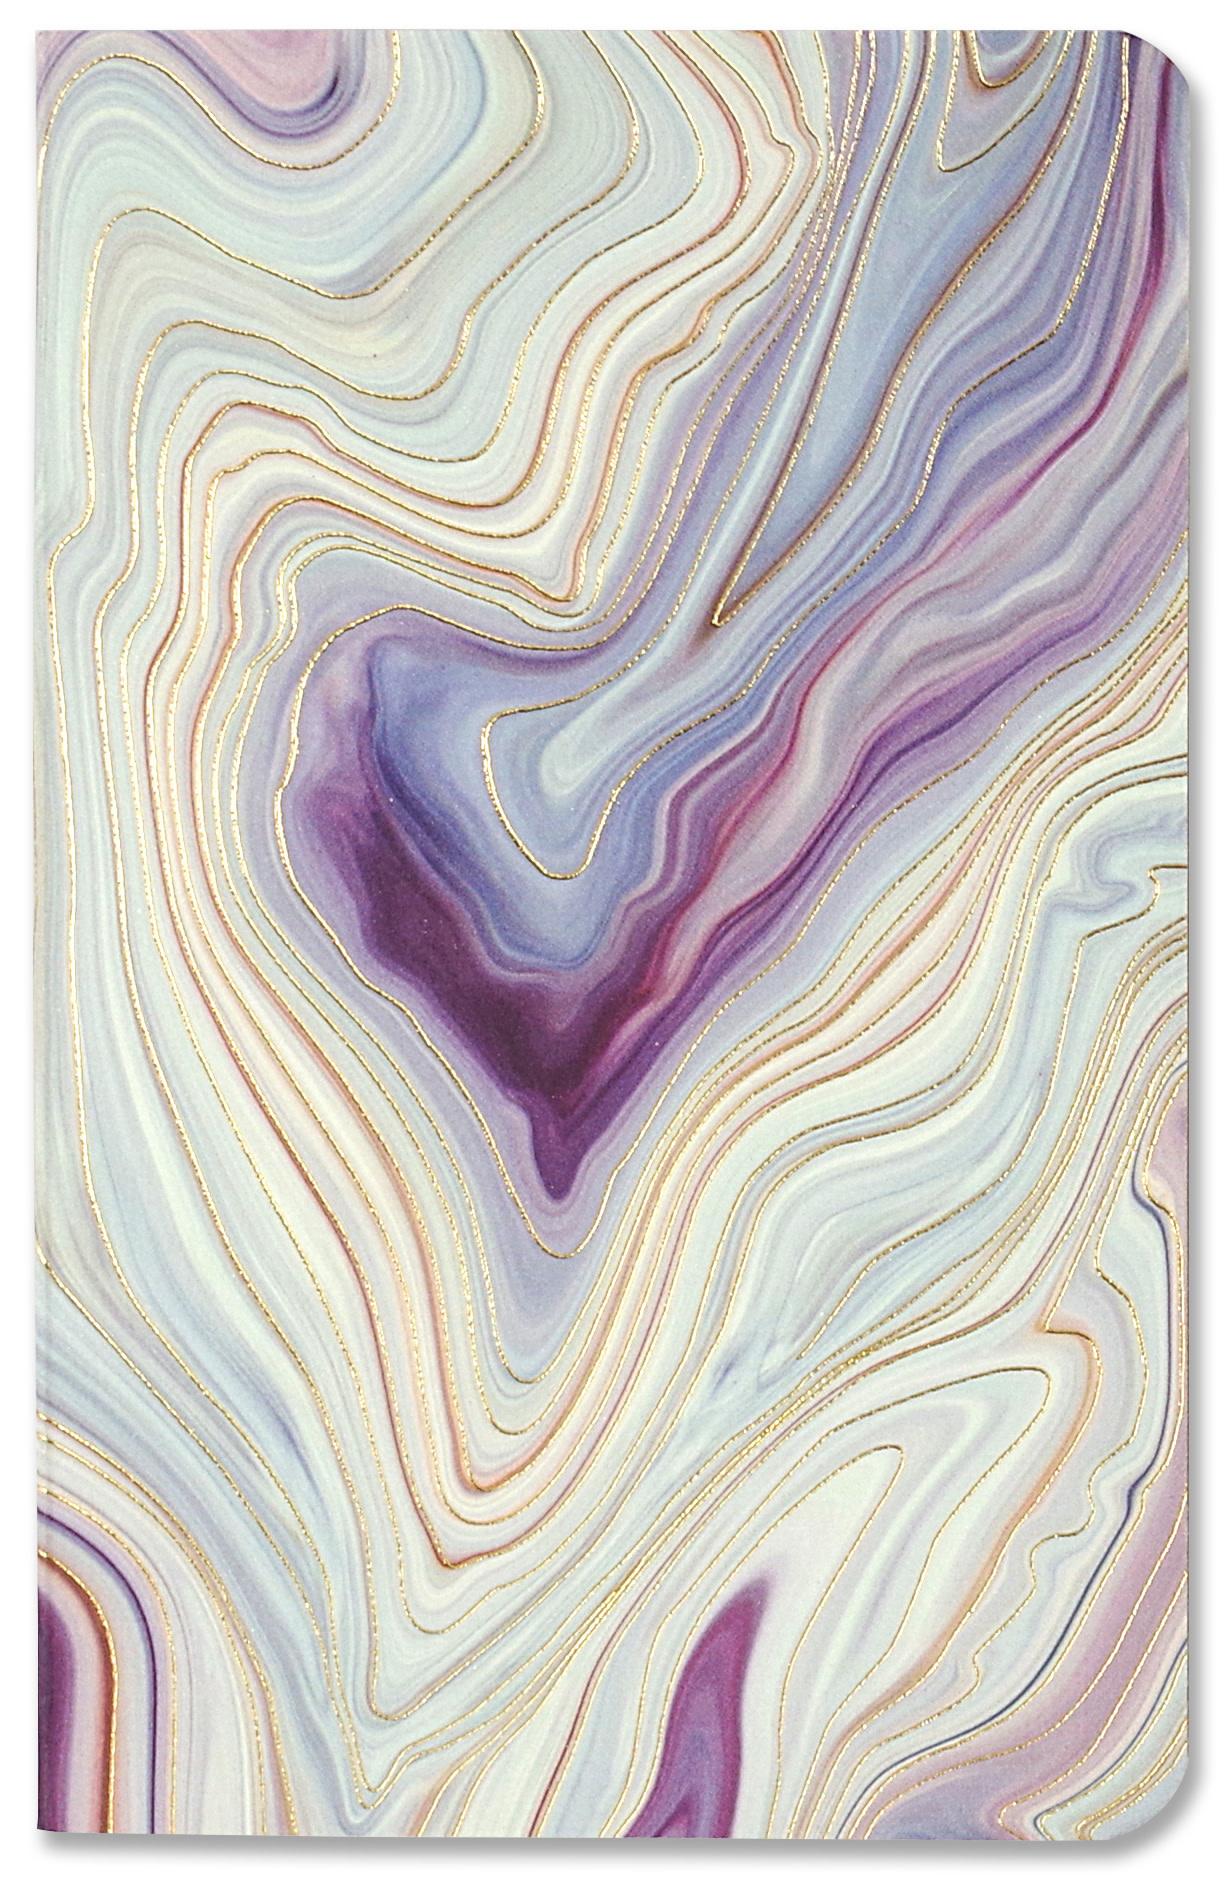 Jotter Notebooks Set of 3 - Agate